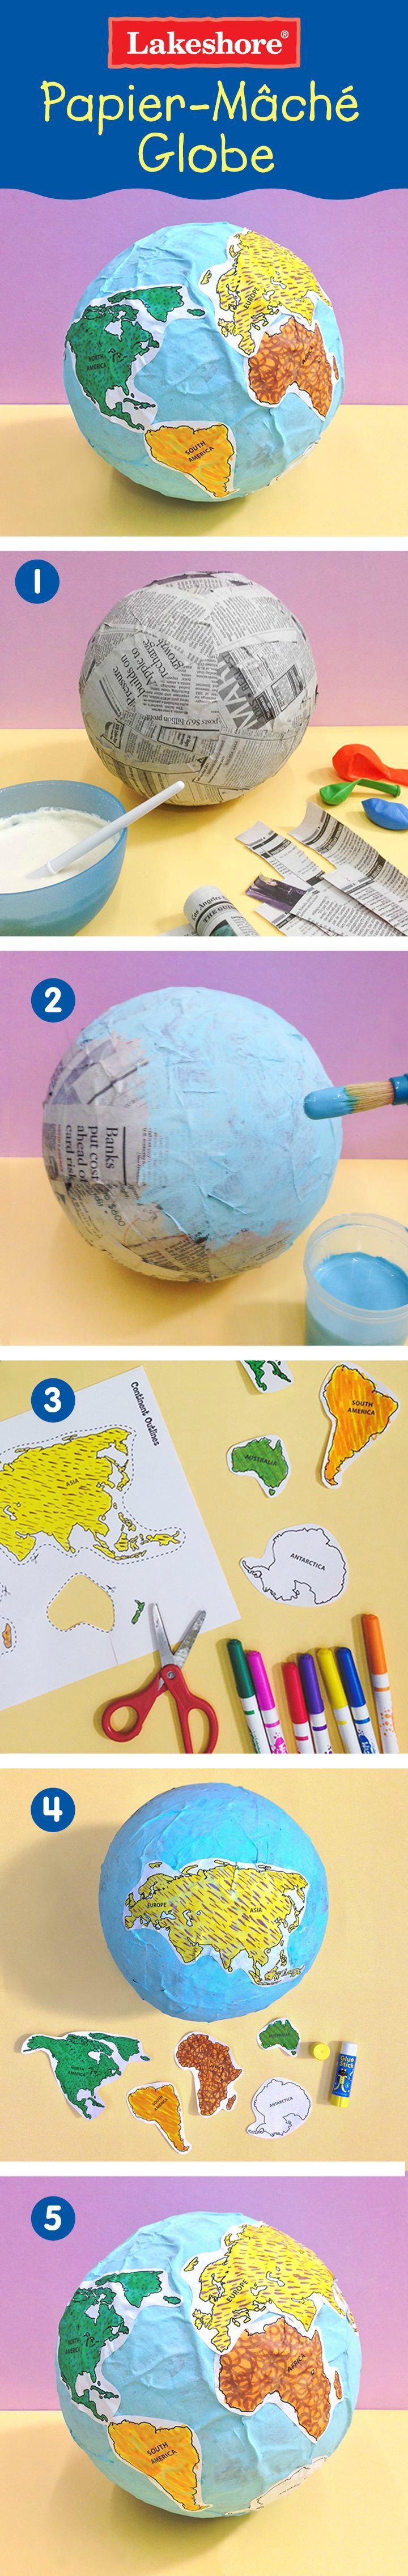 Papier-Mâché Globe with Free Printable Continent Template